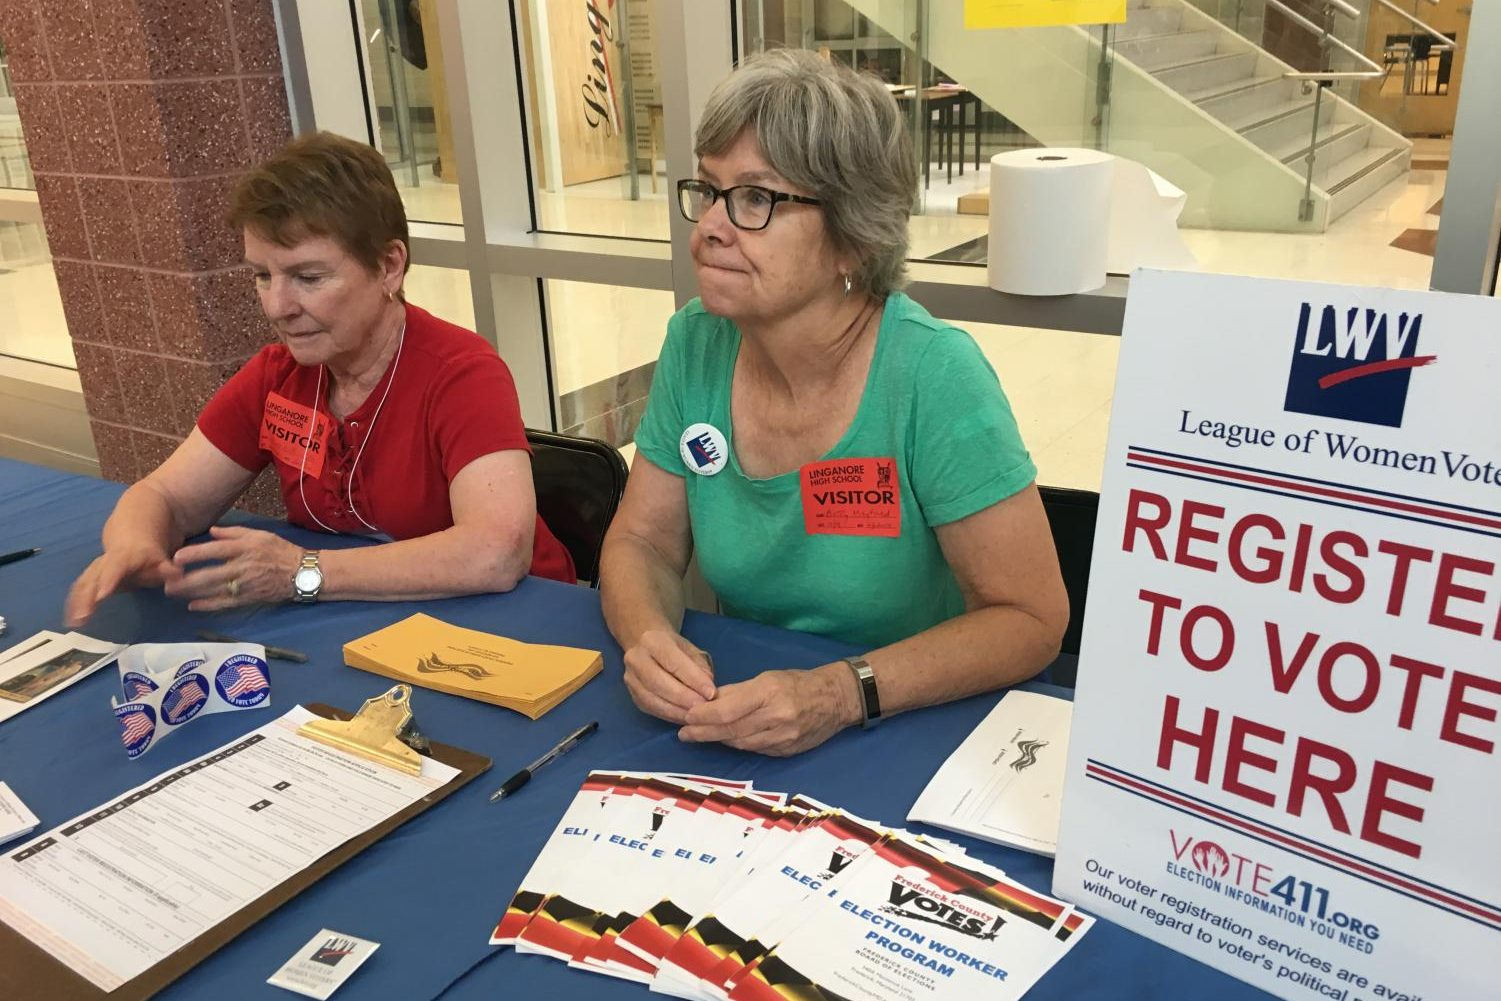 Mary Beth Coker and Betty Mayfield run the League of Women Voters registration table during lunch shifts.